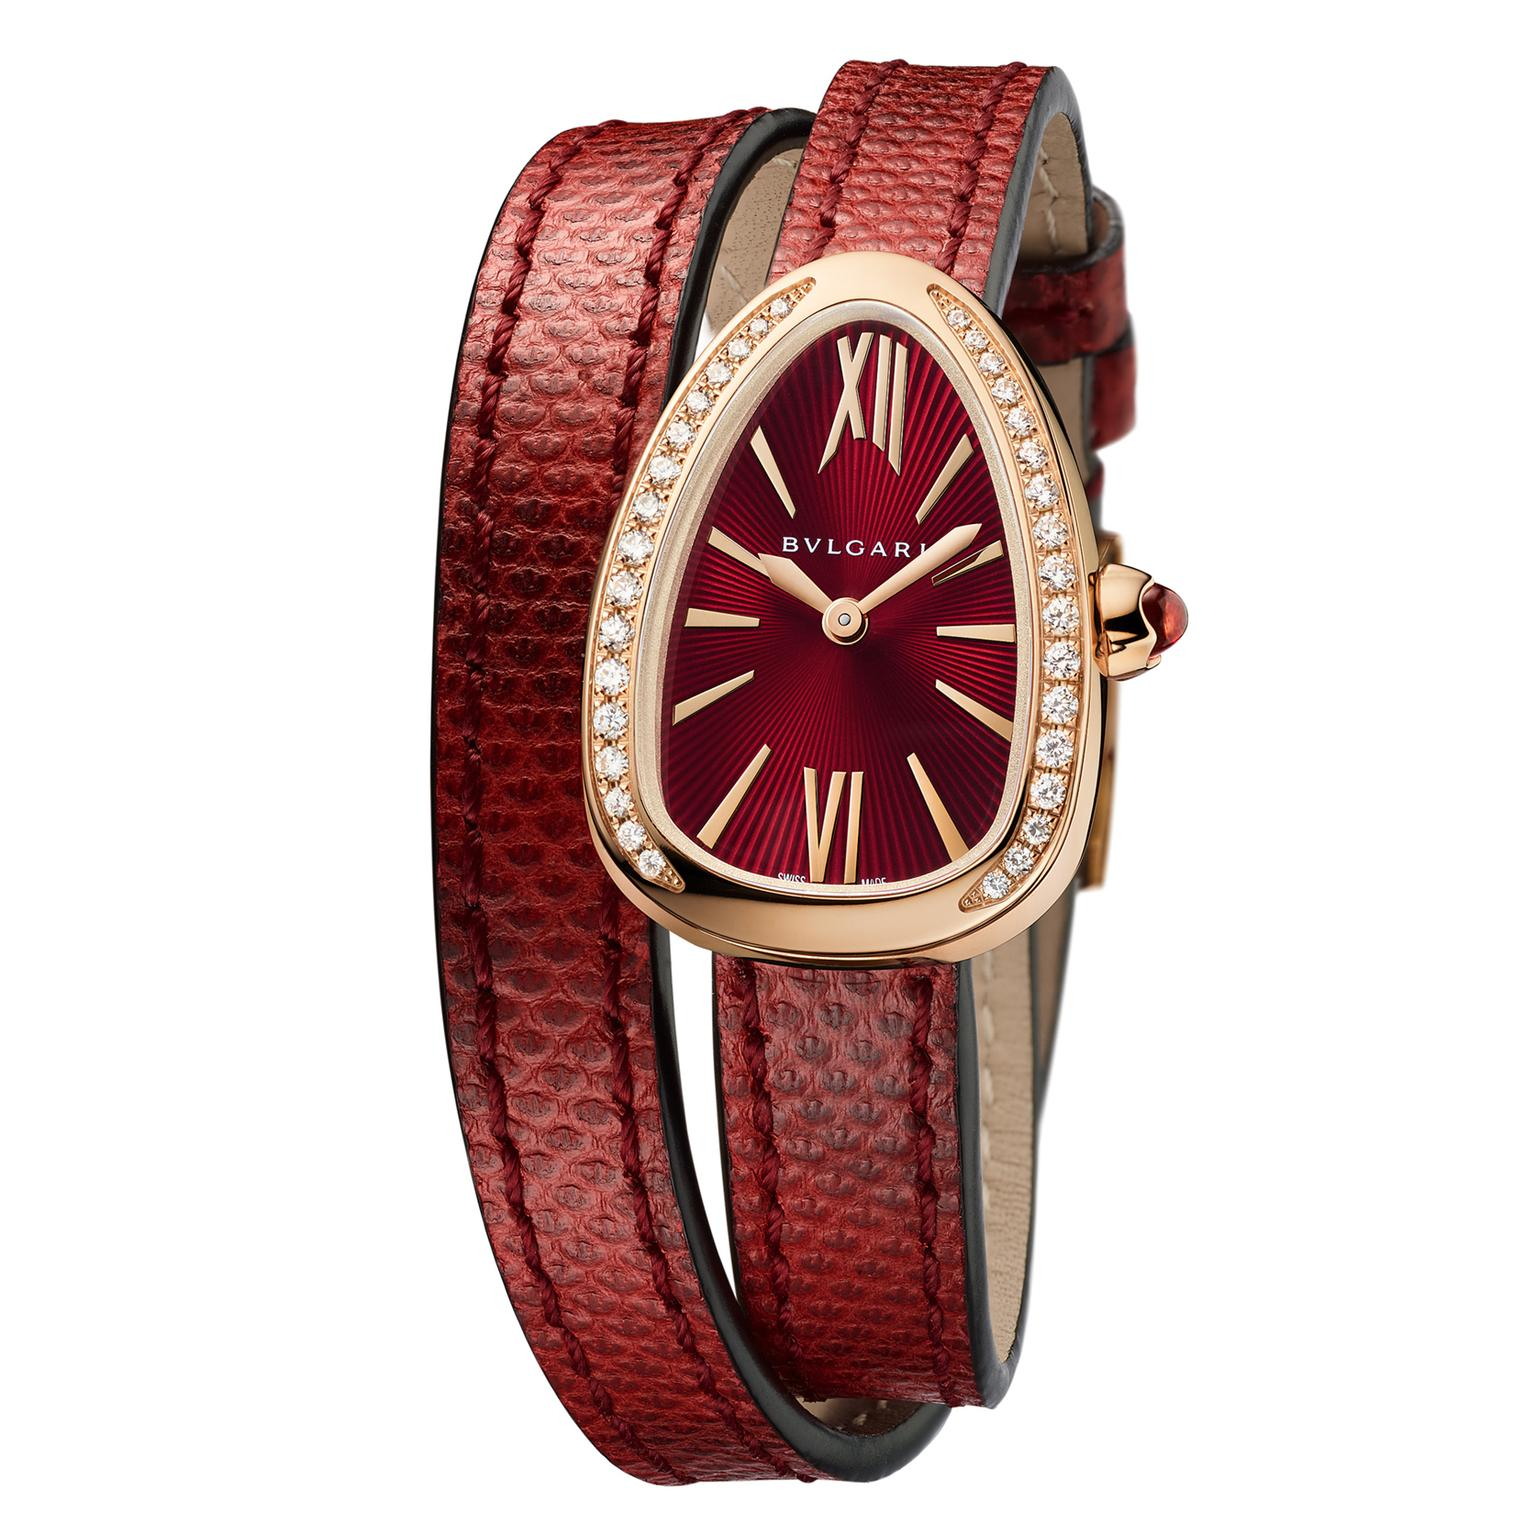 Bulgari Serpenti watch in rose gold with red dial and diamonds